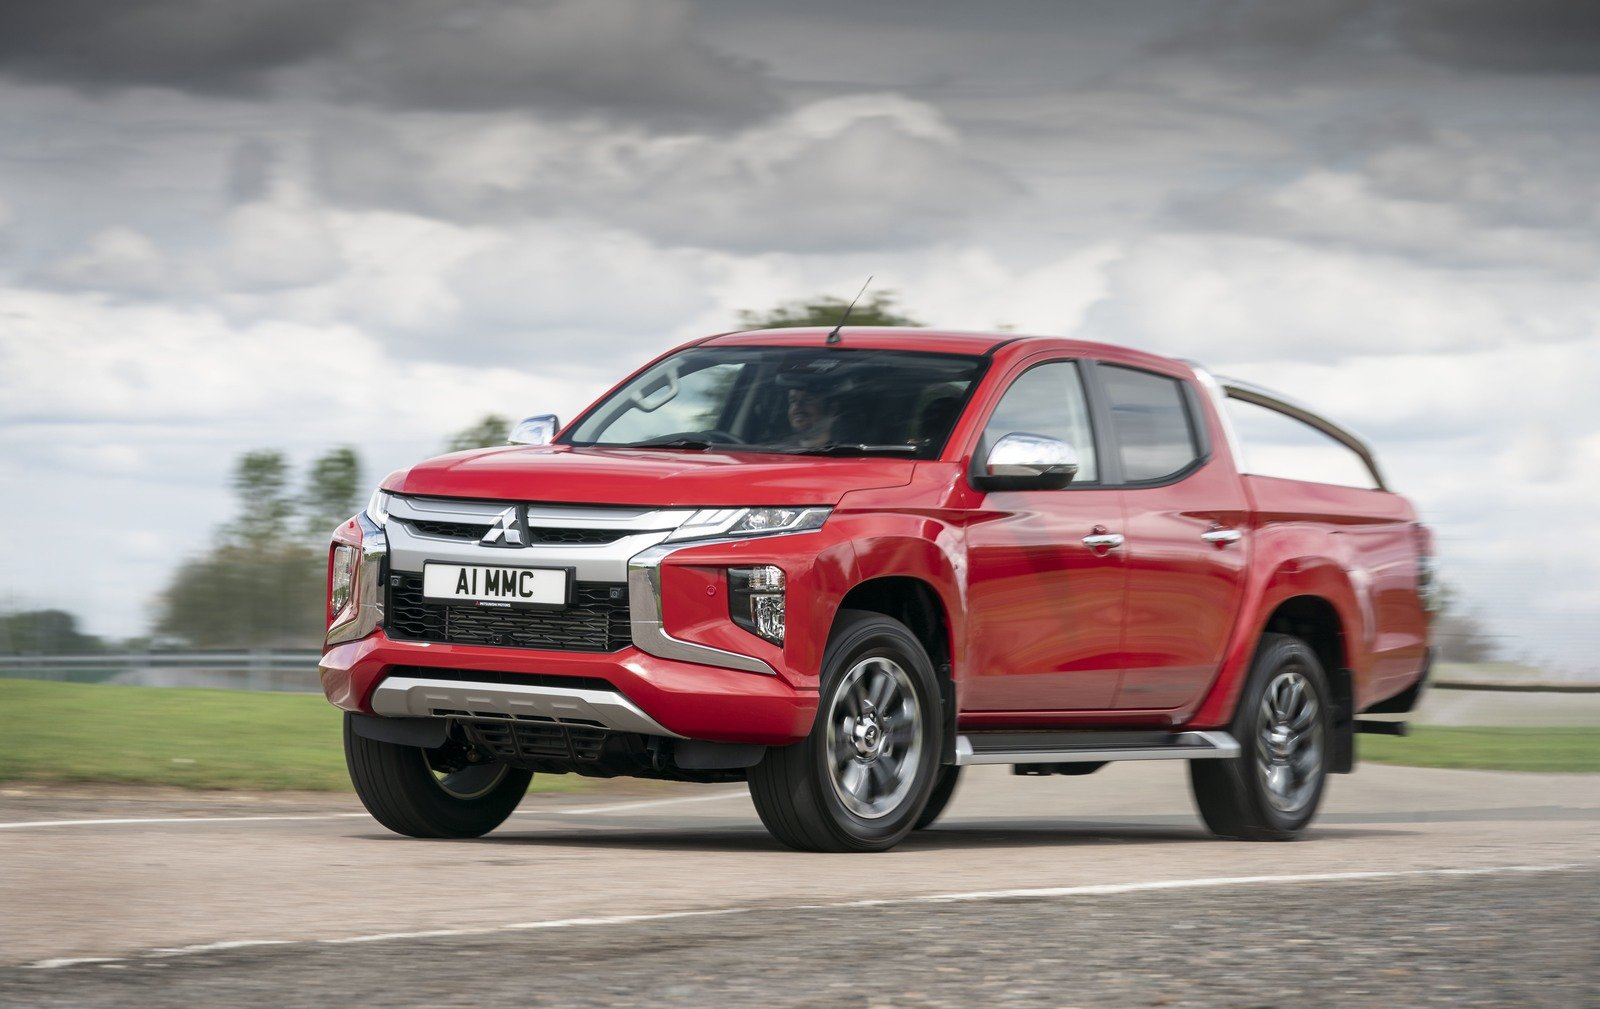 Who Makes Cadillac >> 2019 Mitsubishi L200 Series 6 Pictures, Photos, Wallpapers. | Top Speed